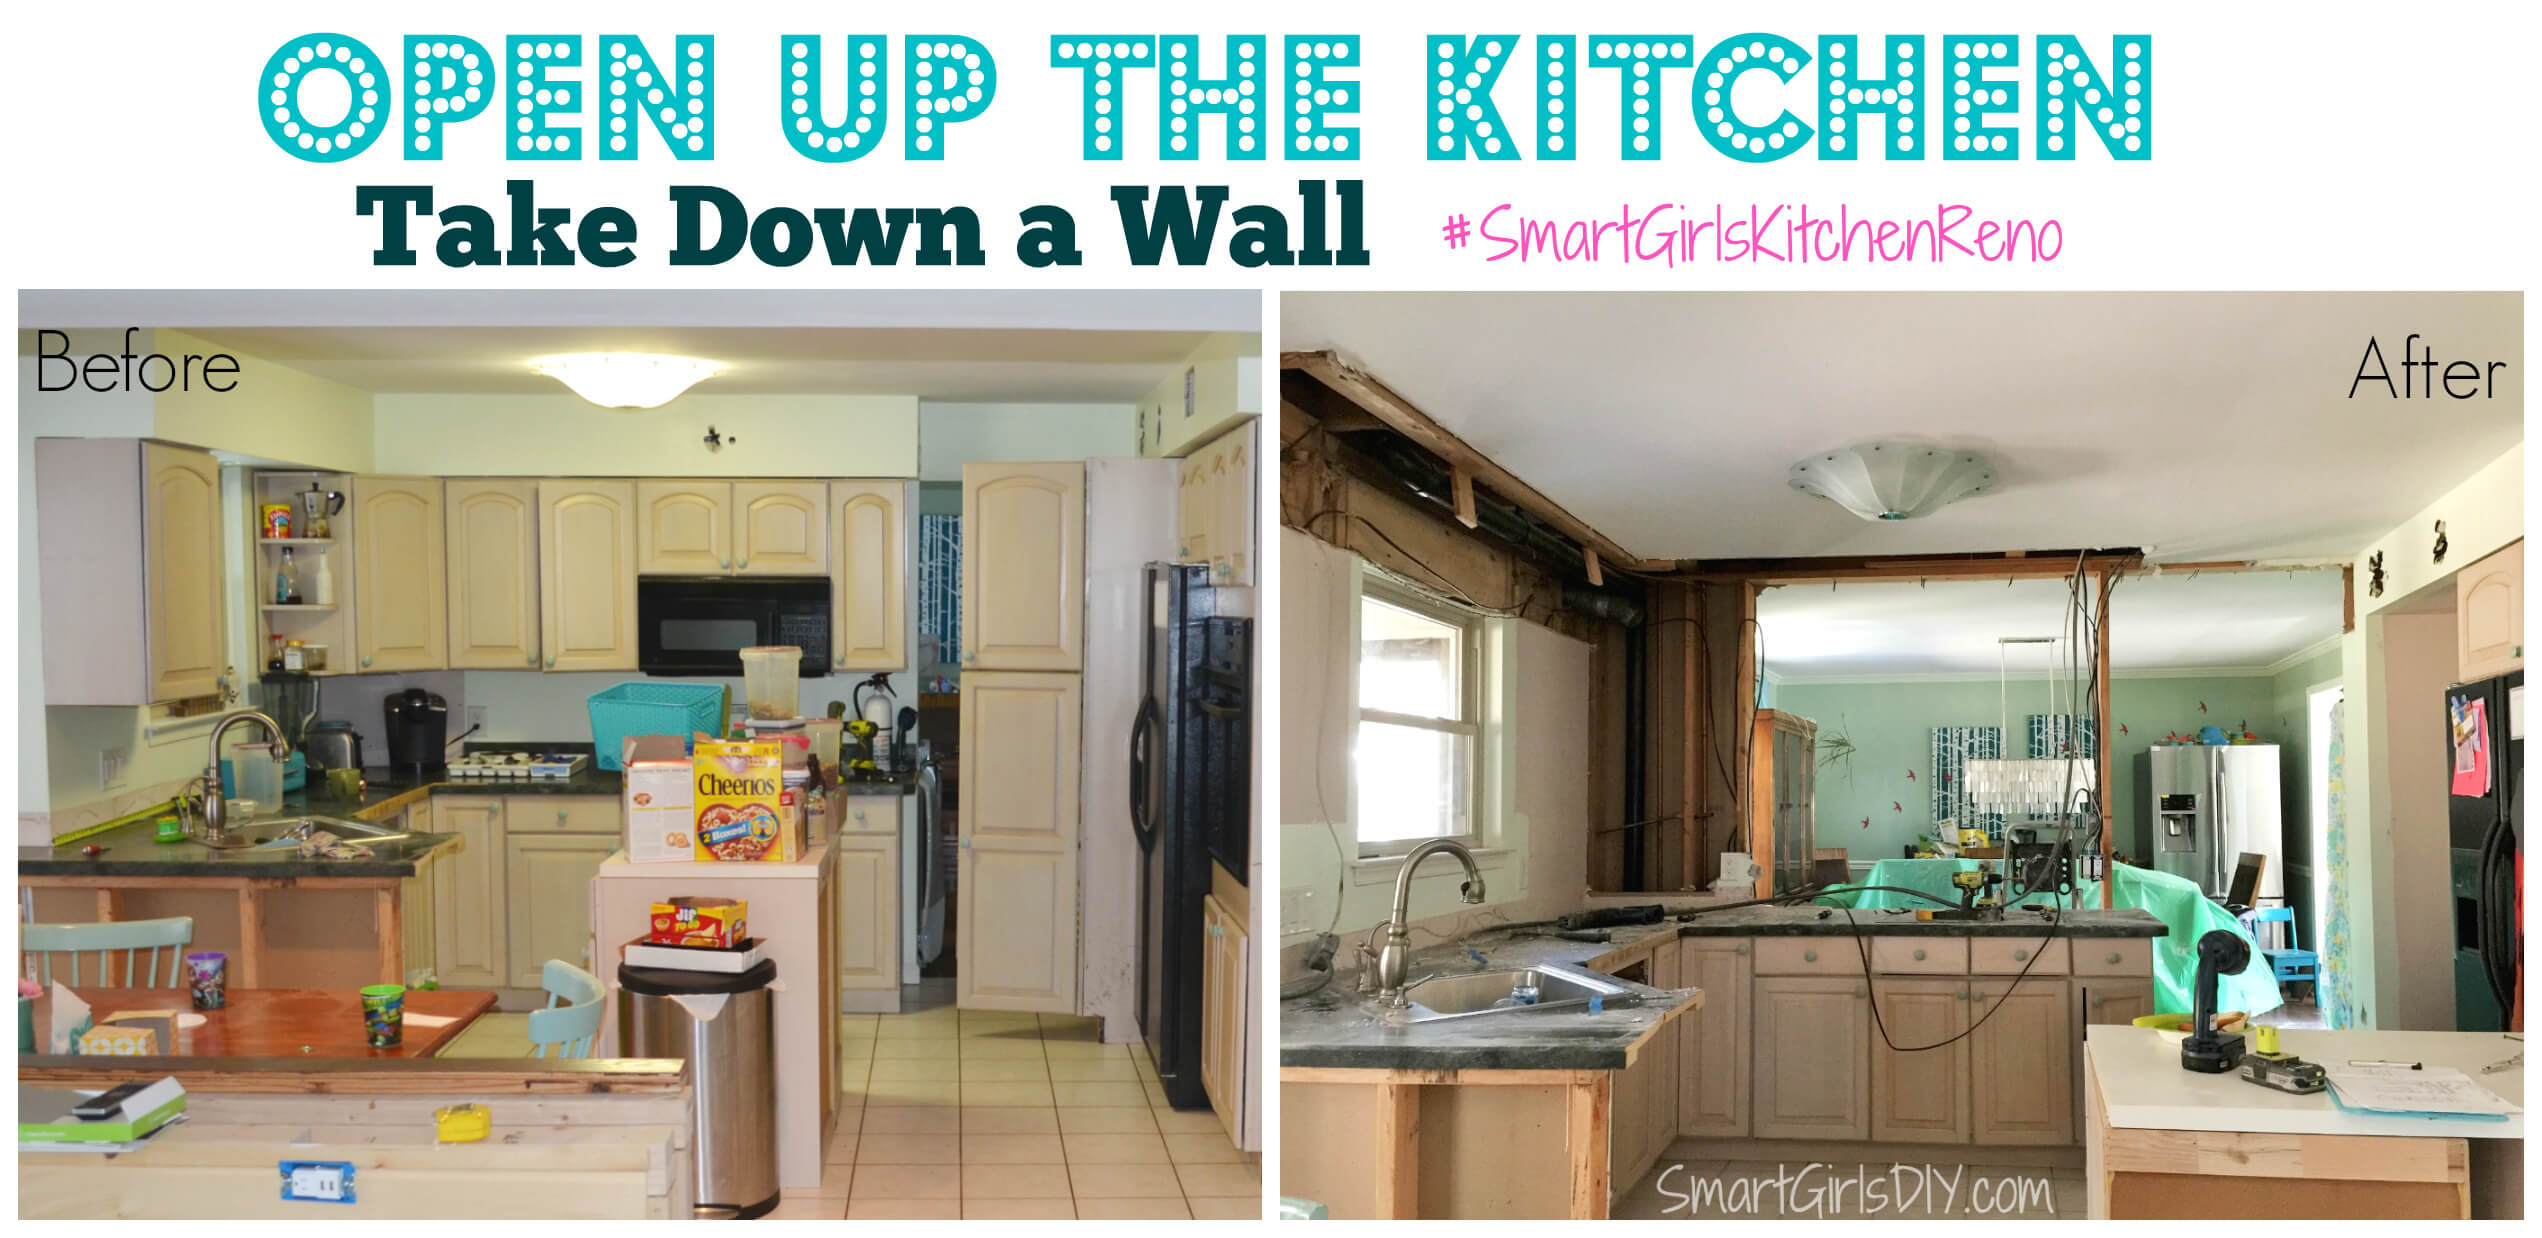 Open up the kitchen - take down a wall #smartgirlskitchenreno